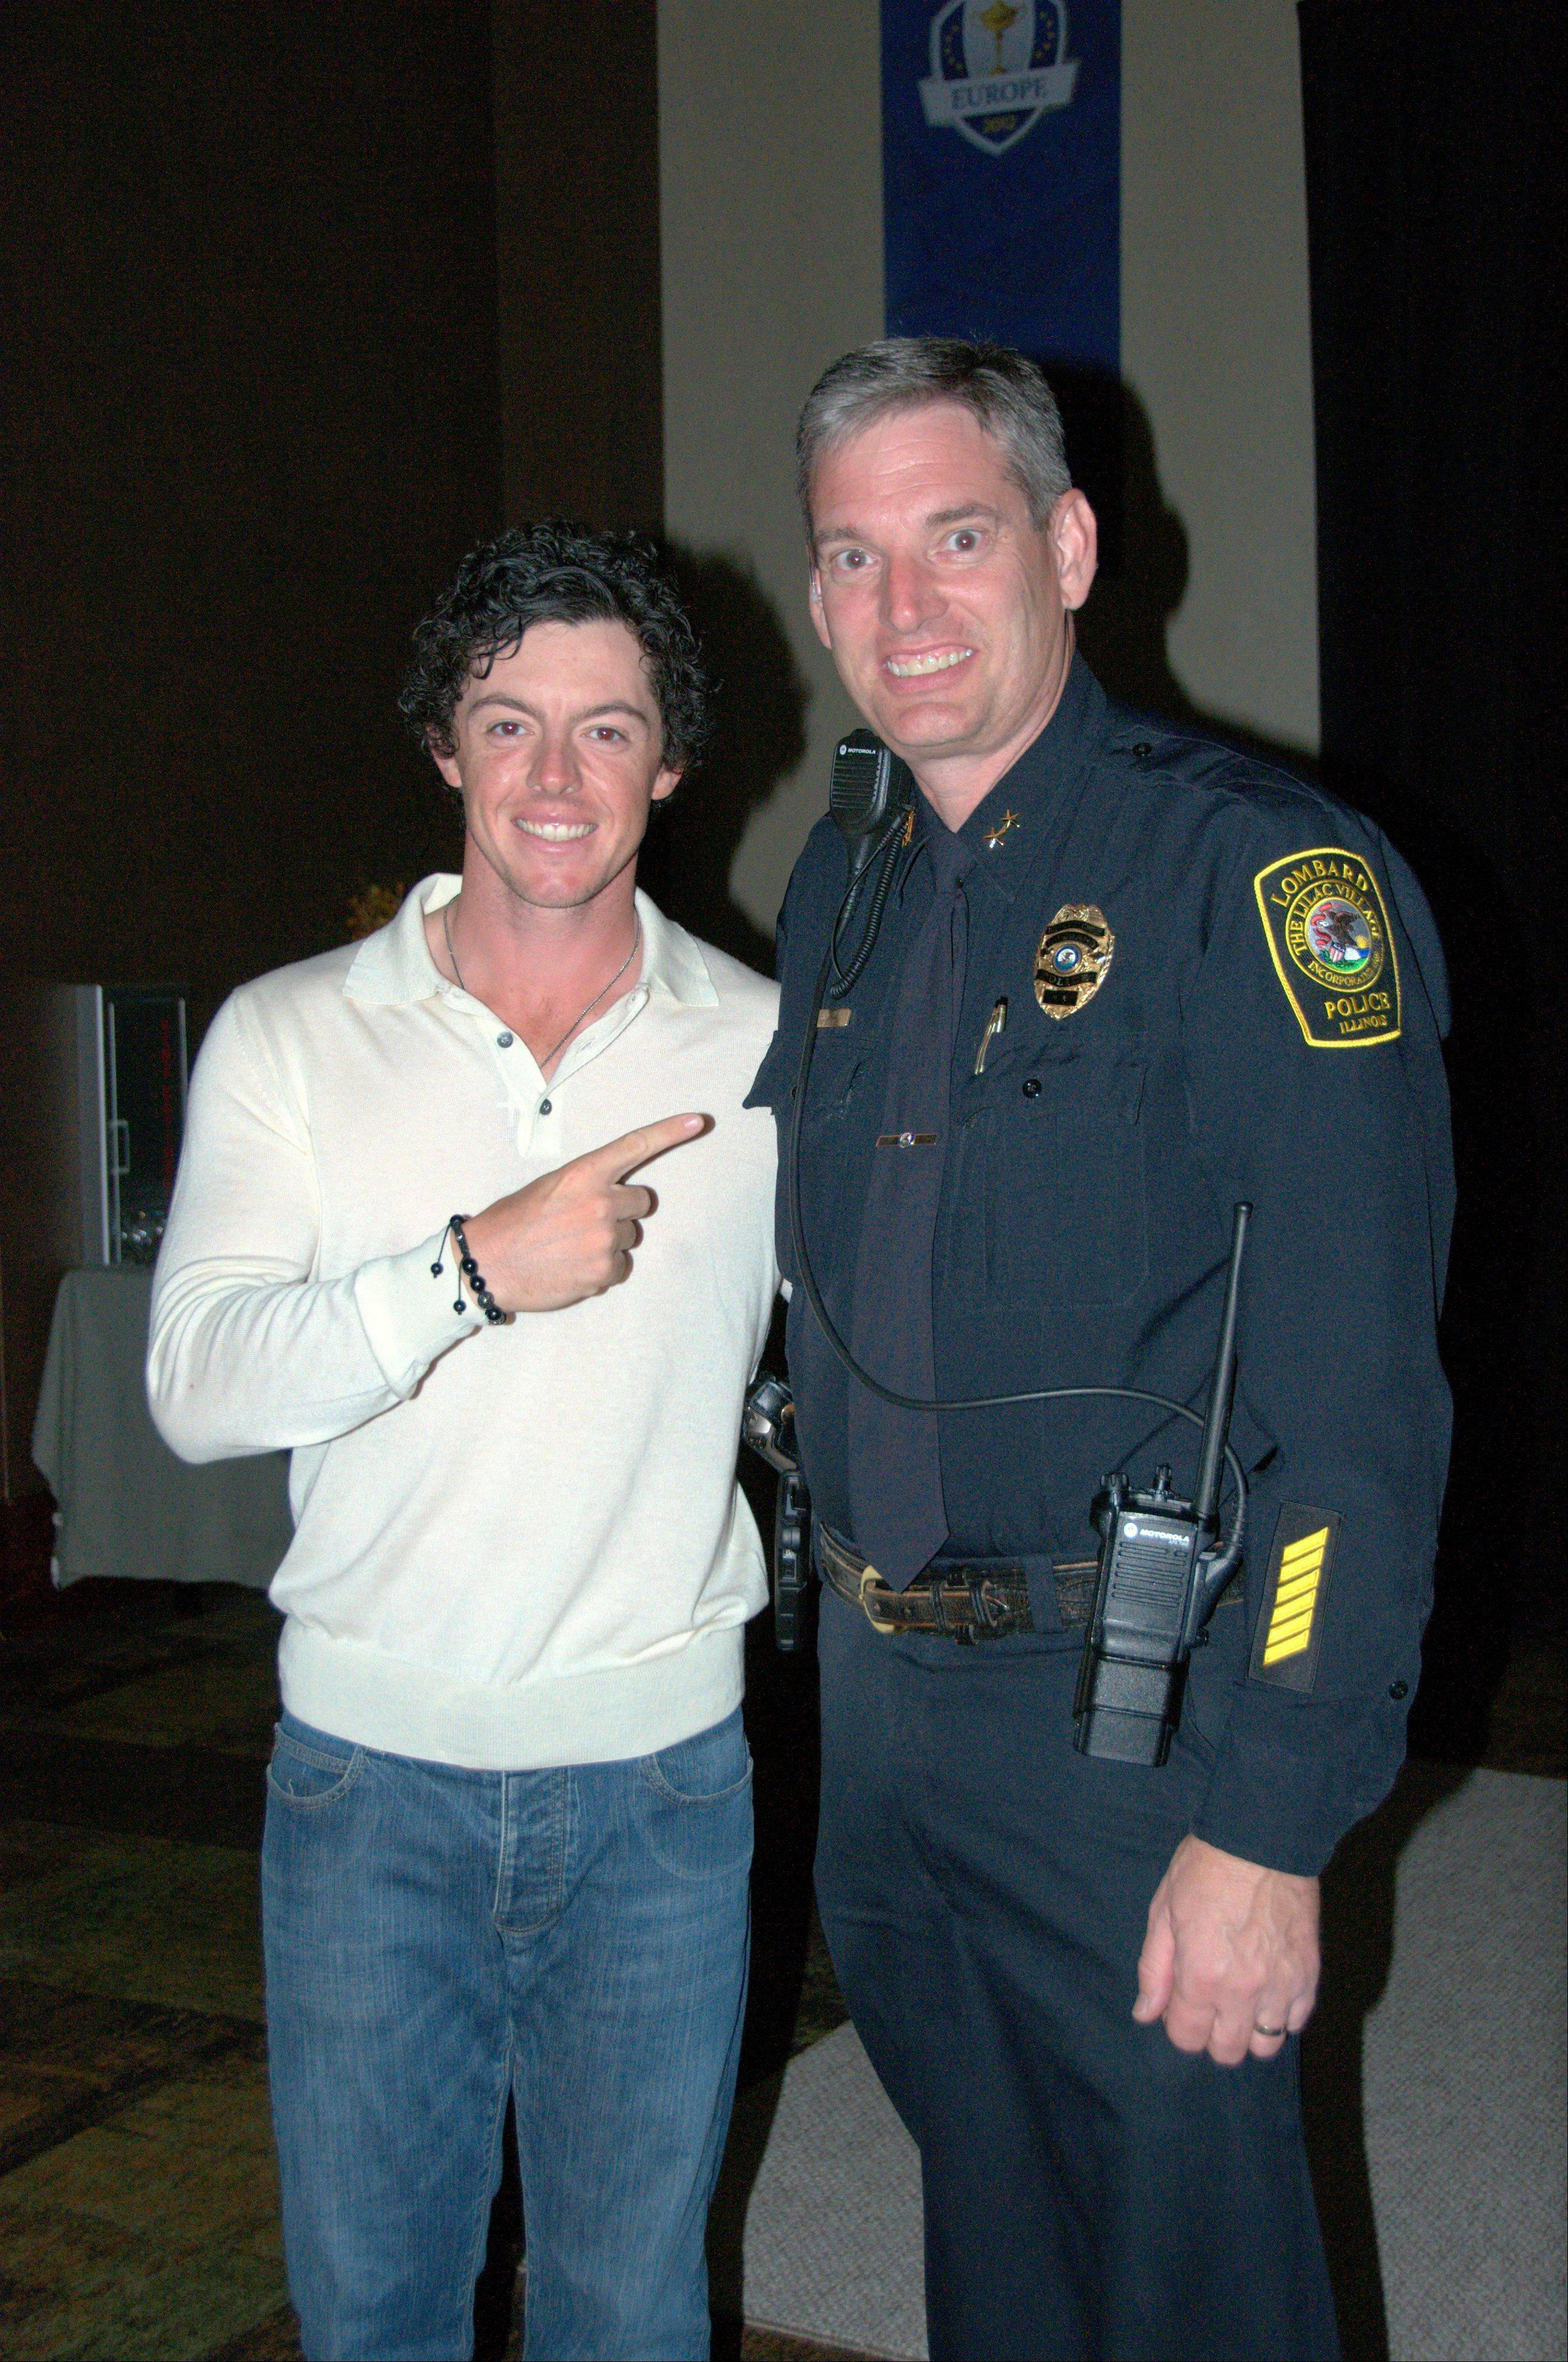 Lombard Deputy Chief Pat Rollins used his unmarked squad car to rush European golfer Rory McIlroy, left, to the Ryder Cup on Sunday in time for the McIlroy to help his team to a comeback win. The car coincidentally was scheduled to be replaced and the village plans to sell it on an online auction site.